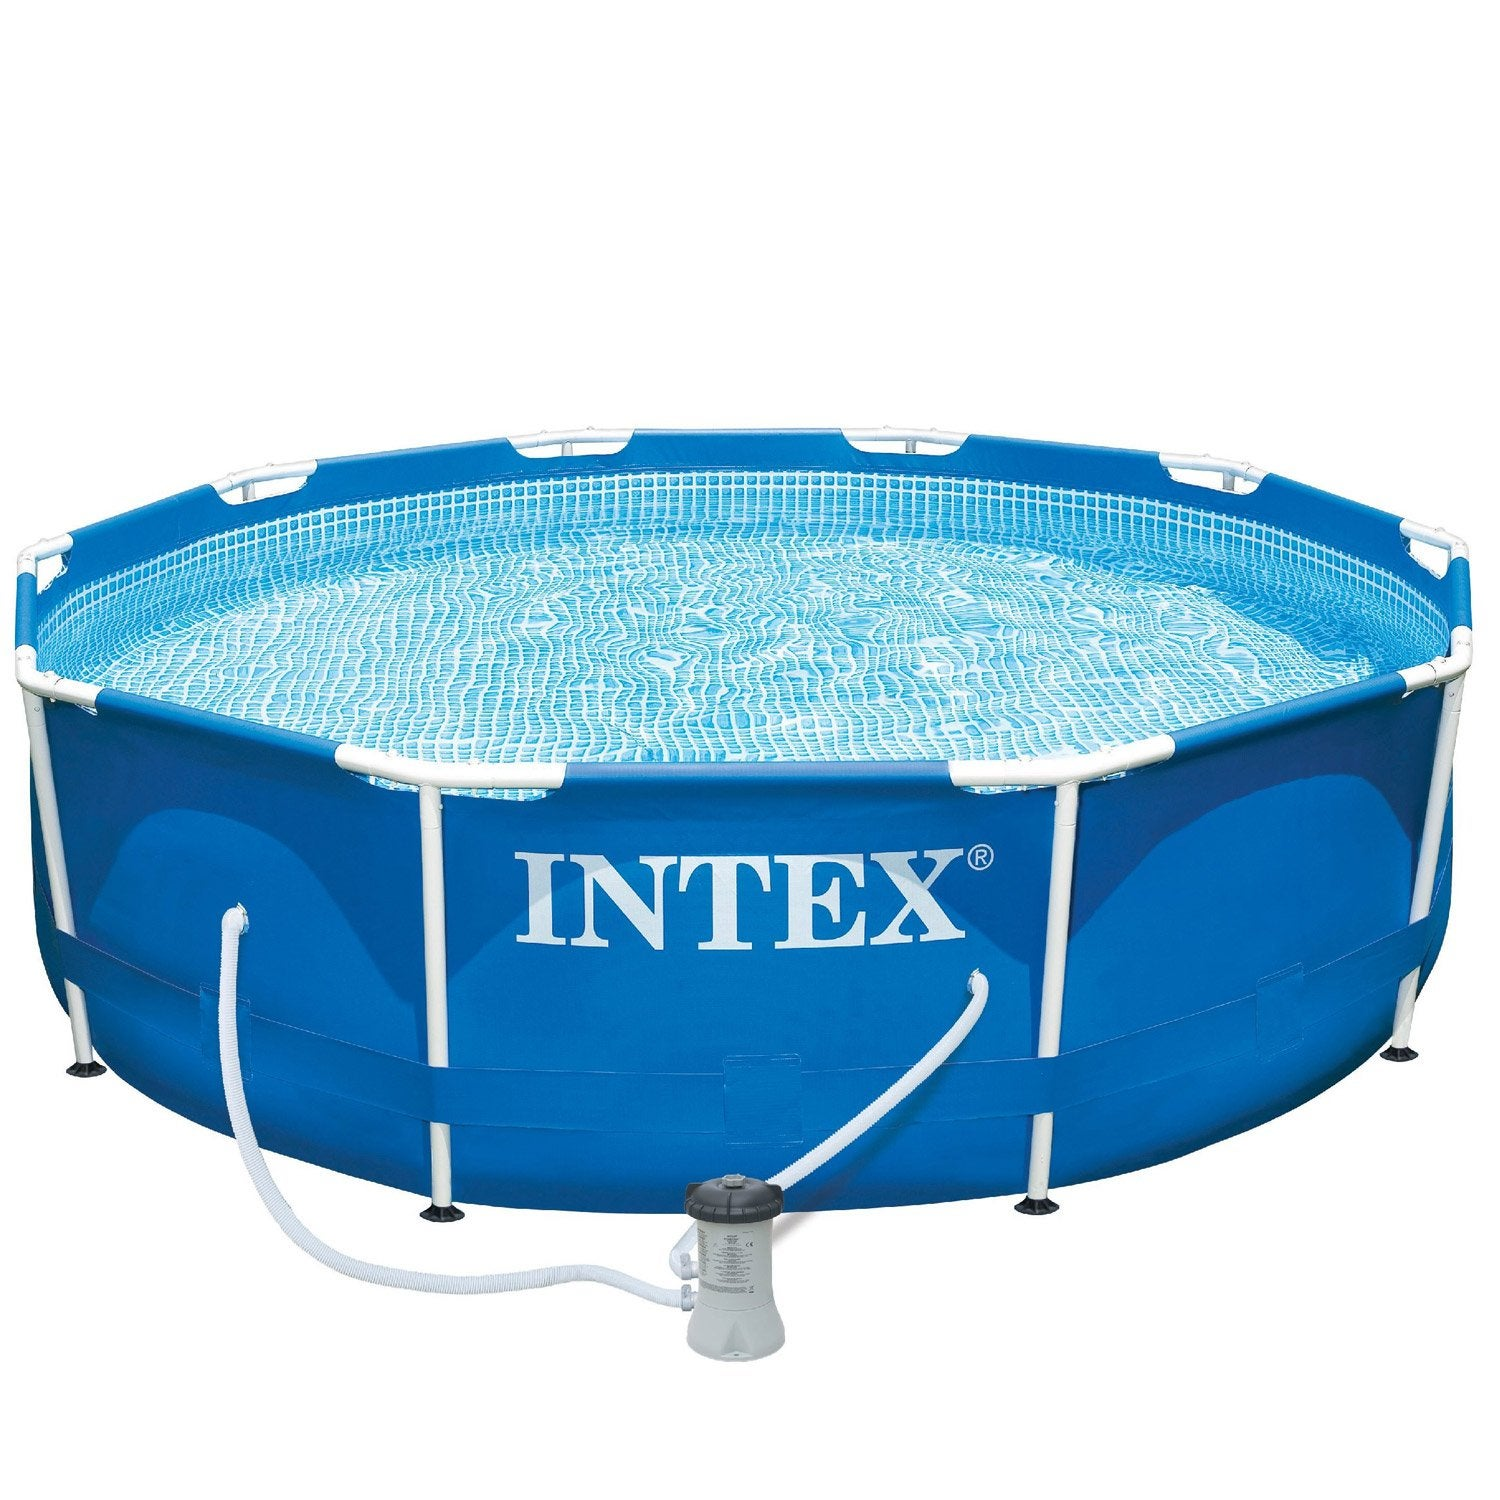 Piscine hors sol autoportante tubulaire metal frame intex for Piscine hors sol perpignan